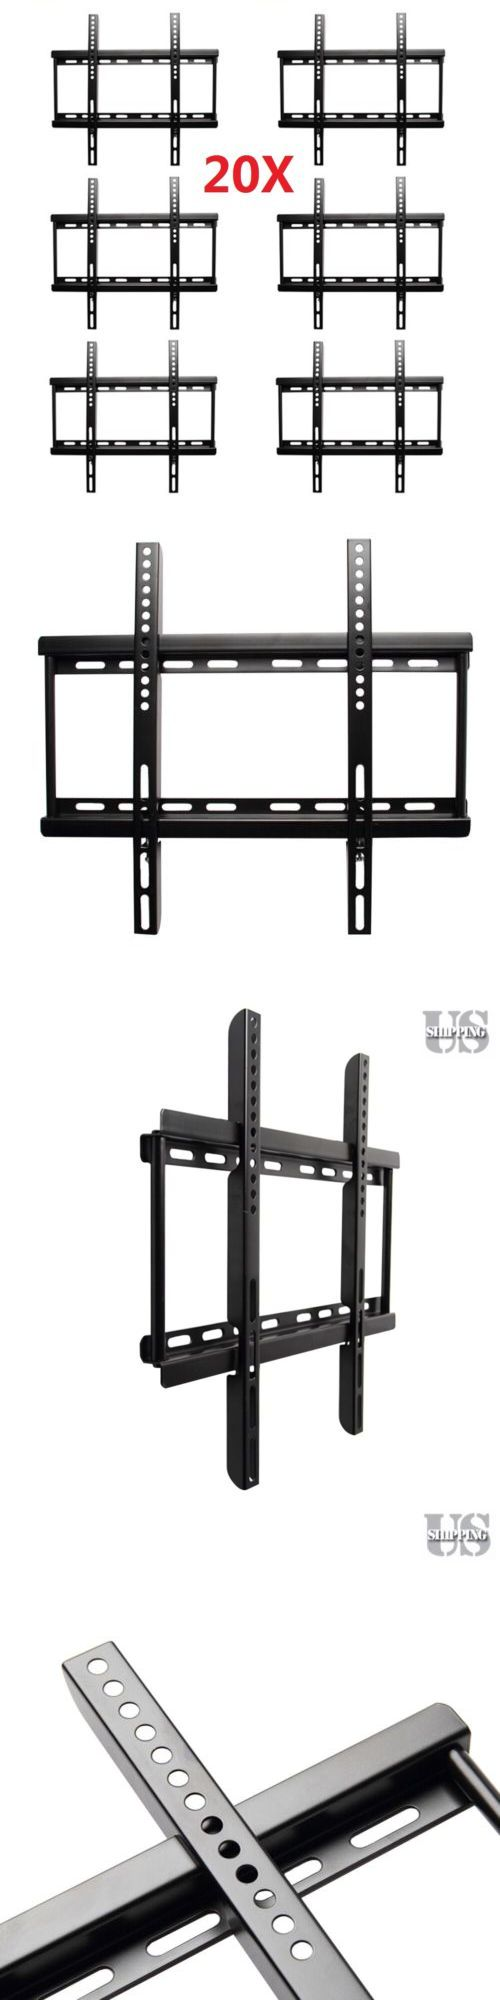 TV Mounts and Brackets: 20 Pack - Tv Wall Mount Bracket Lcd Led Plasma Flat 27 32 37 40 42 46 47 50 55 -> BUY IT NOW ONLY: $128 on eBay!